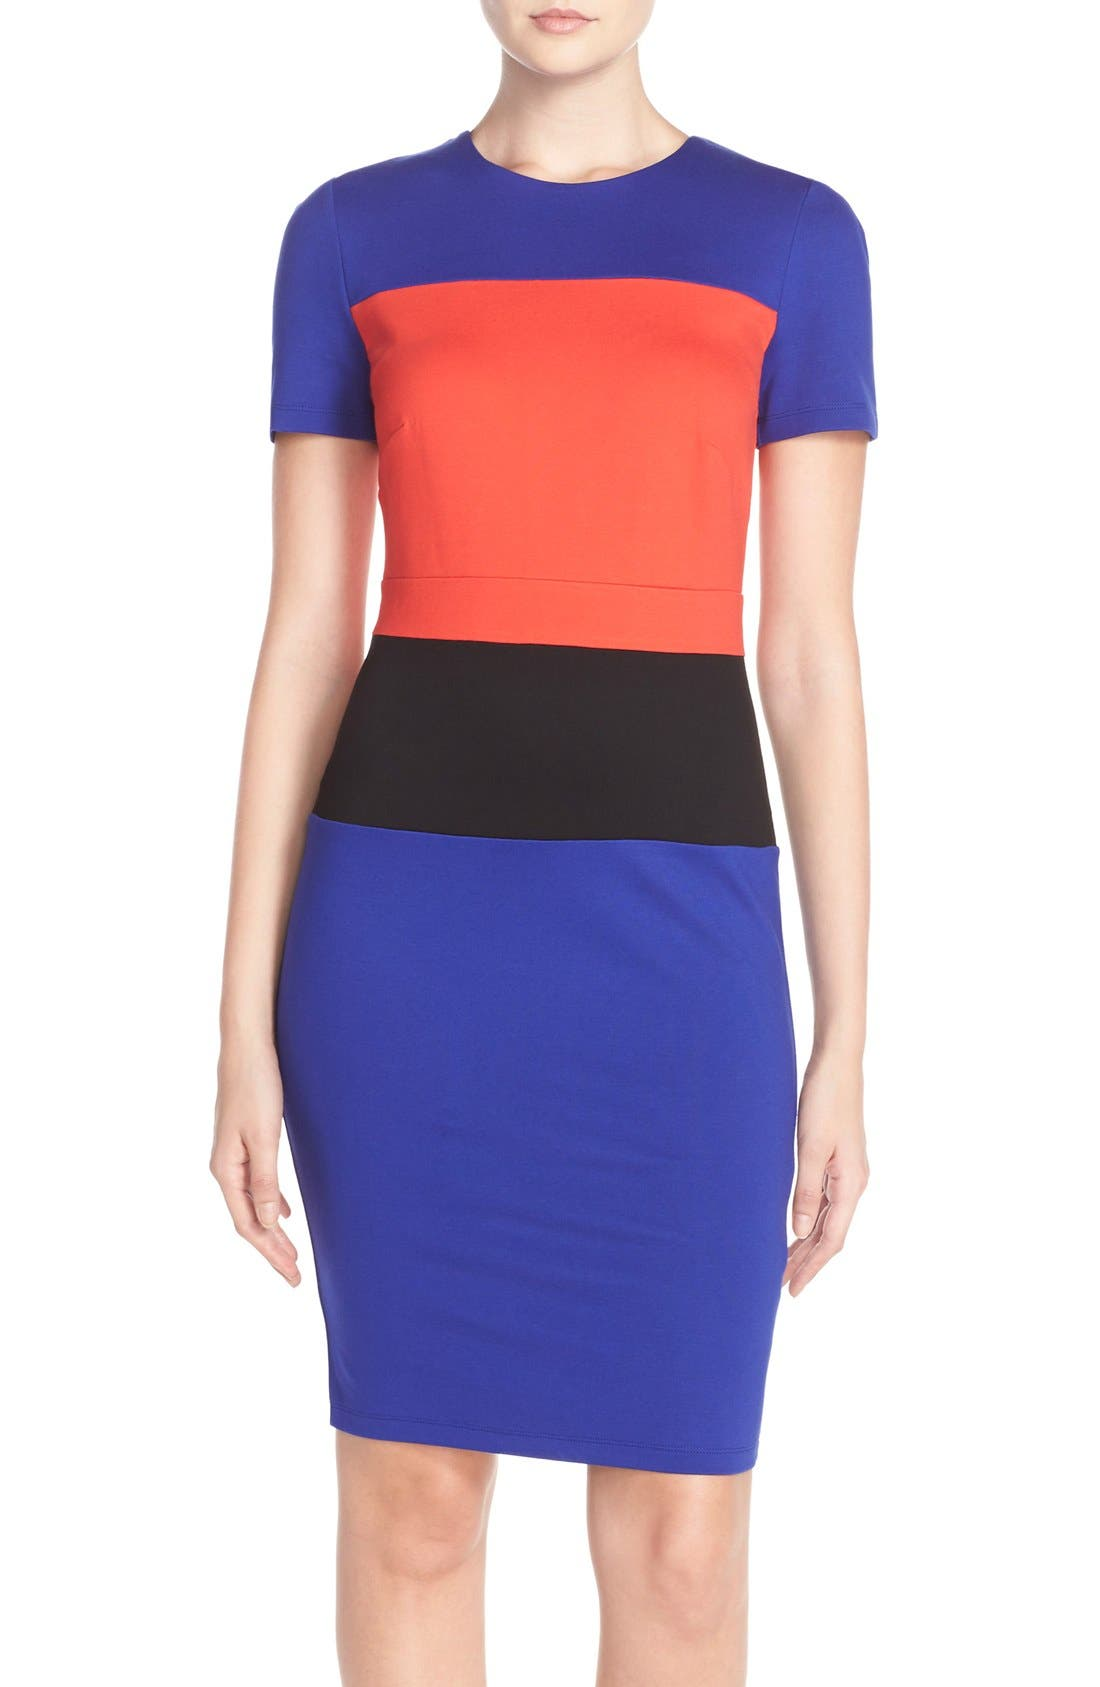 Main Image - French Connection ColorblockJersey Sheath Dress